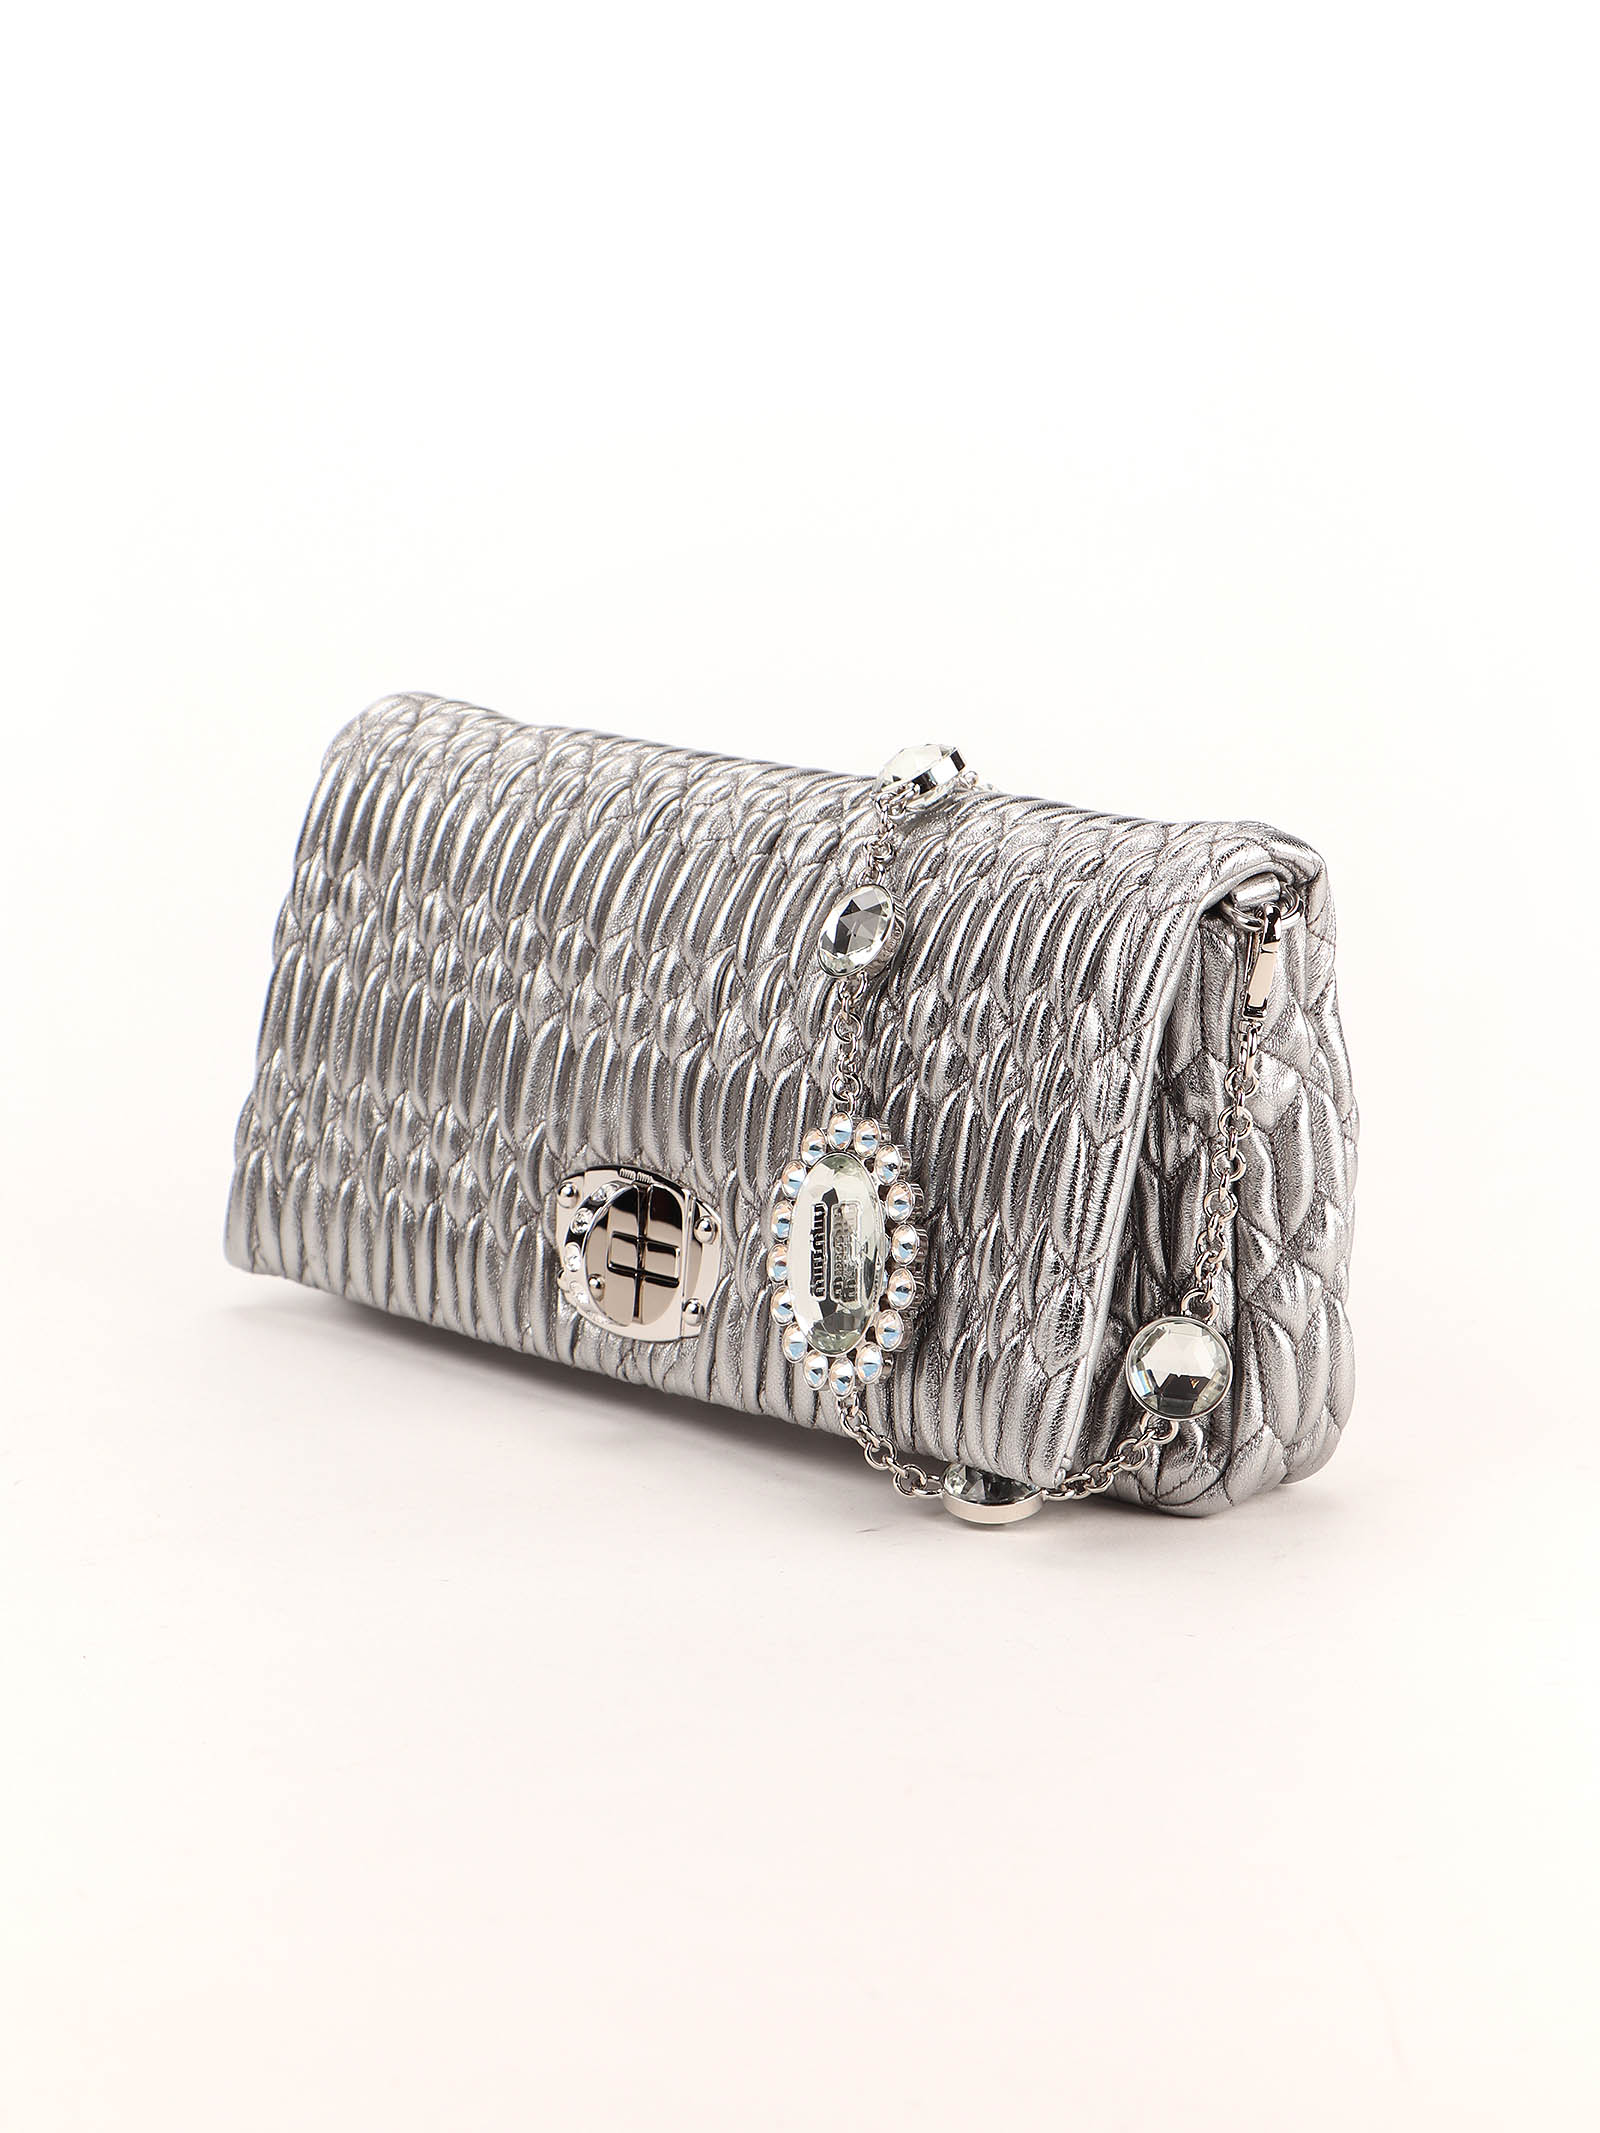 Immagine di Miu Miu | Miu Miu Iconic Crystal Cloqué Nappa Leather Bag